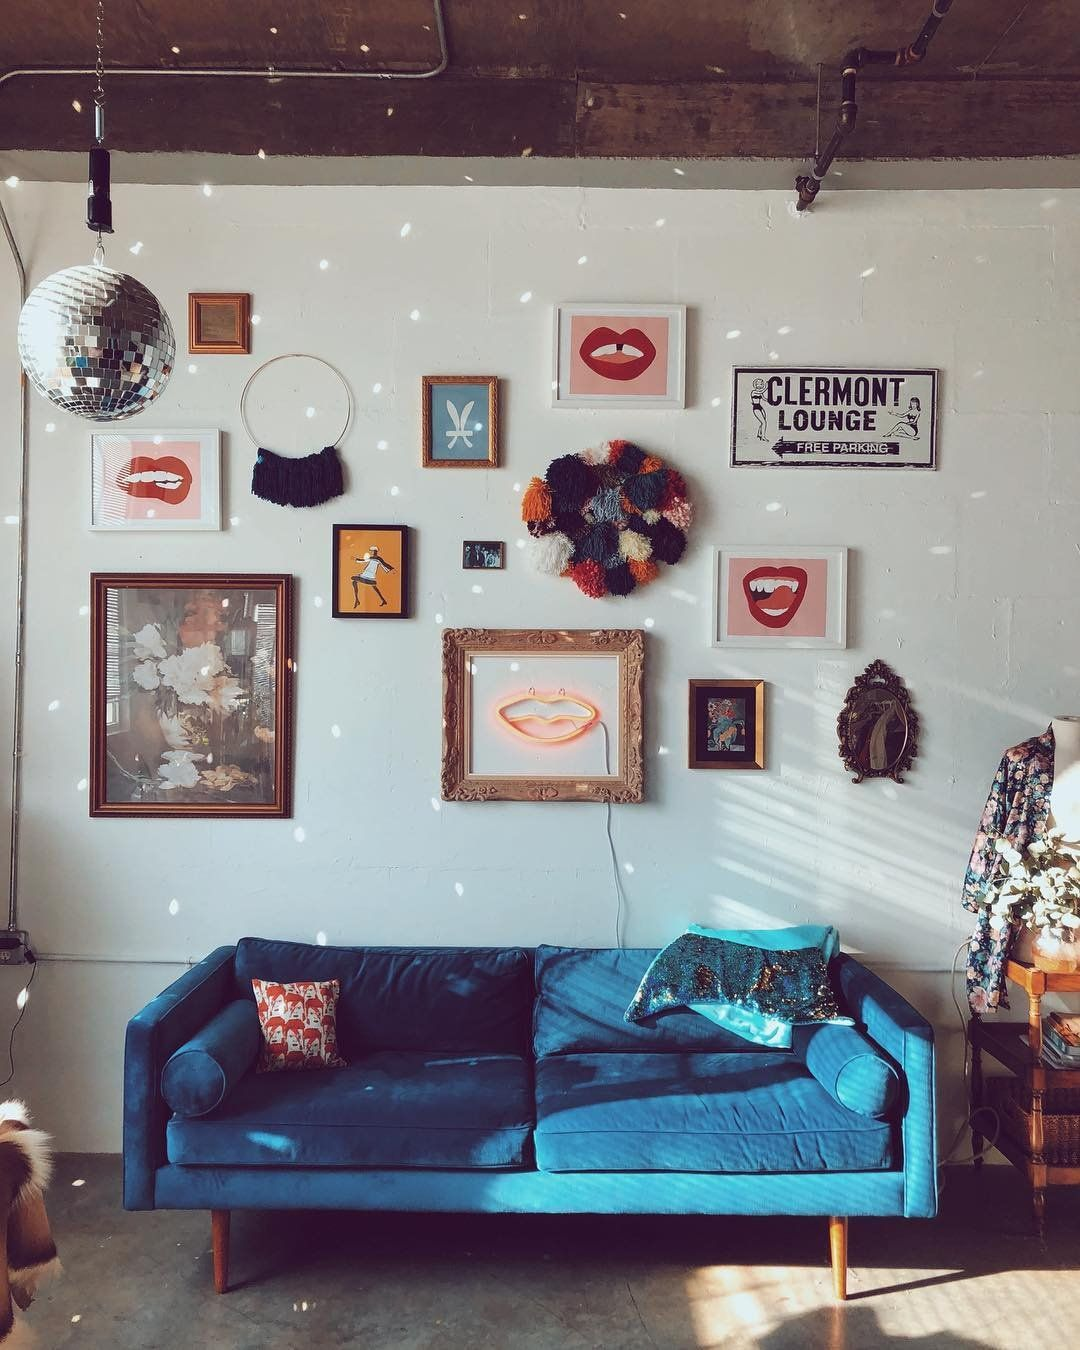 urban sofa gallery lavagem de em santa barbara do oeste pin by outfitters on wall space room living we need a disco ball lol jk but not